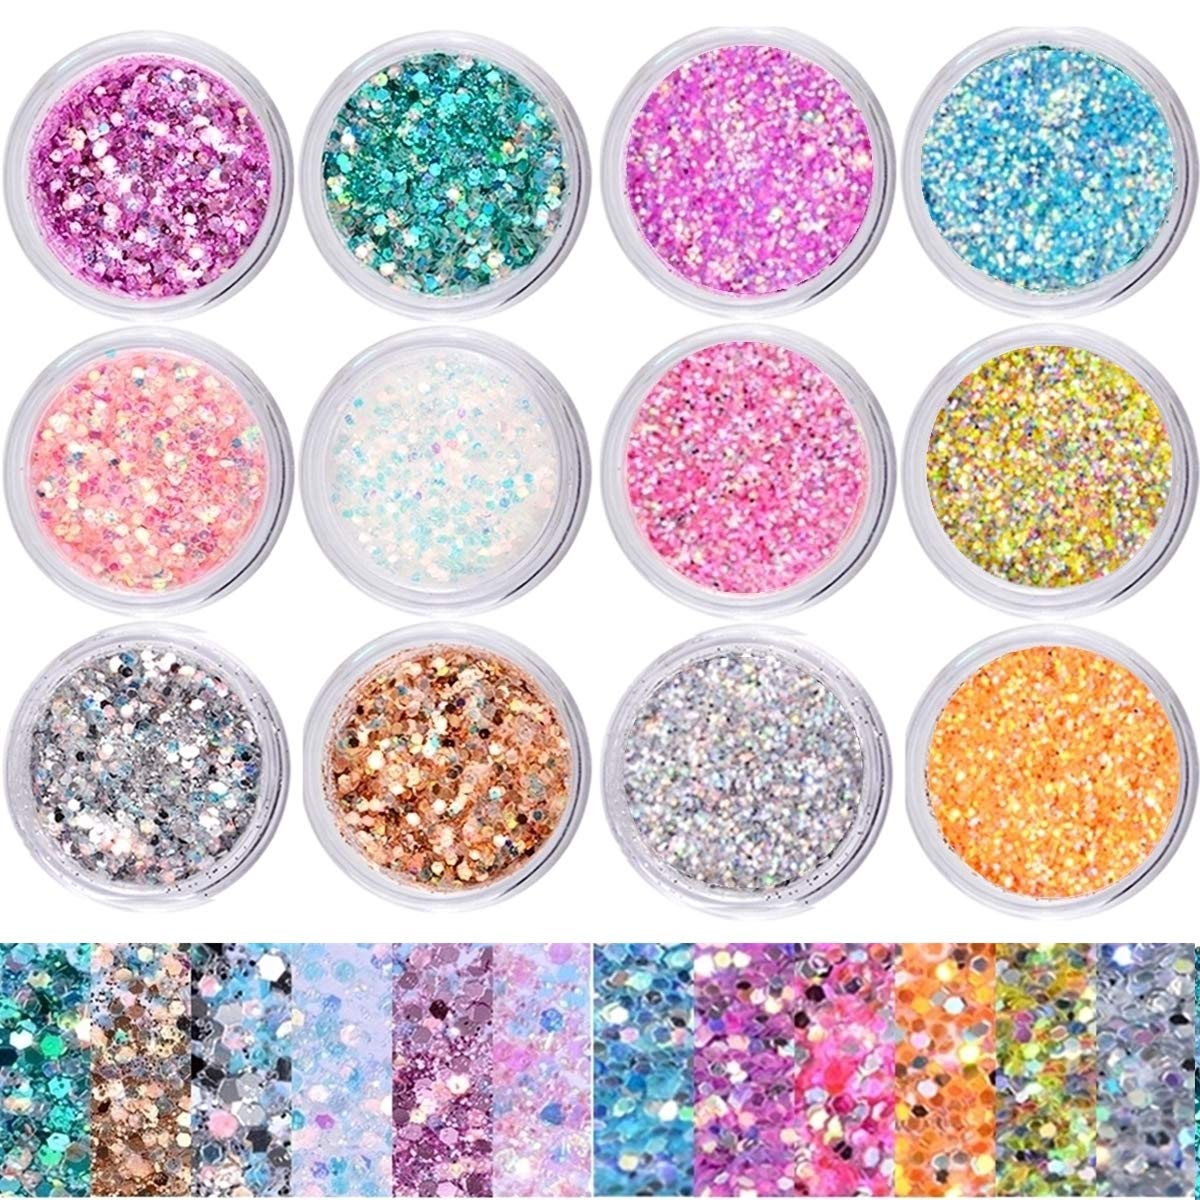 Umillars 12 Boxes Nail Art Mermaid Iridescent Flakes Glitter Sequins Colorful Holographic Laser Glitter Powder Festival Cosmetic Face Hair Body Art Glitter